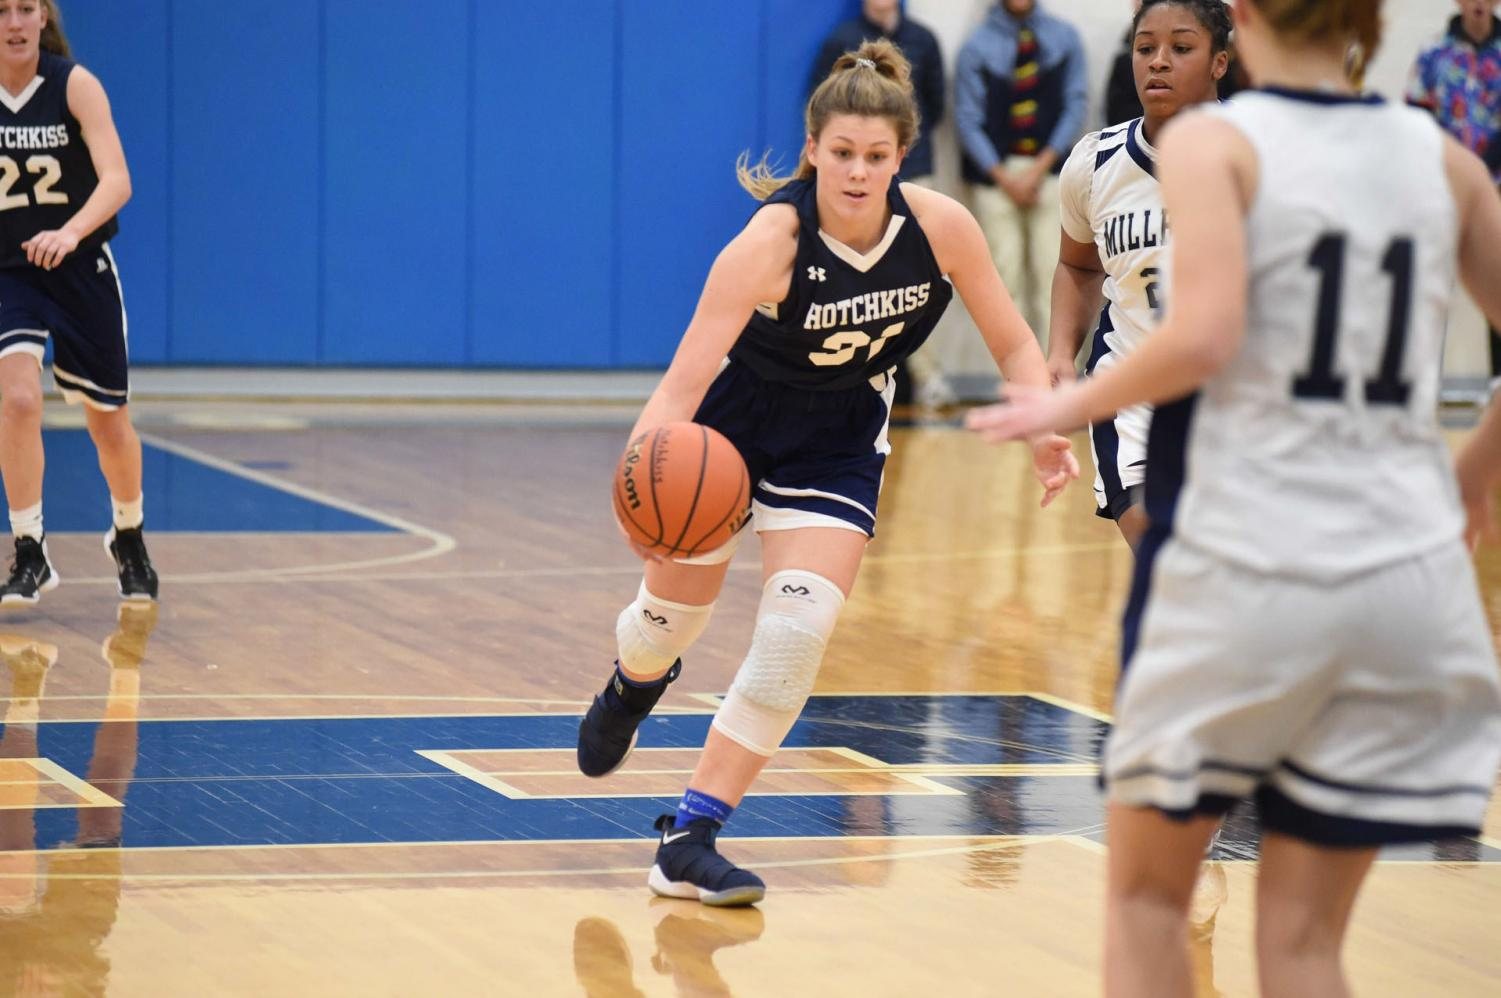 Hattie Childs '19 dribbles the ball against Millbrook